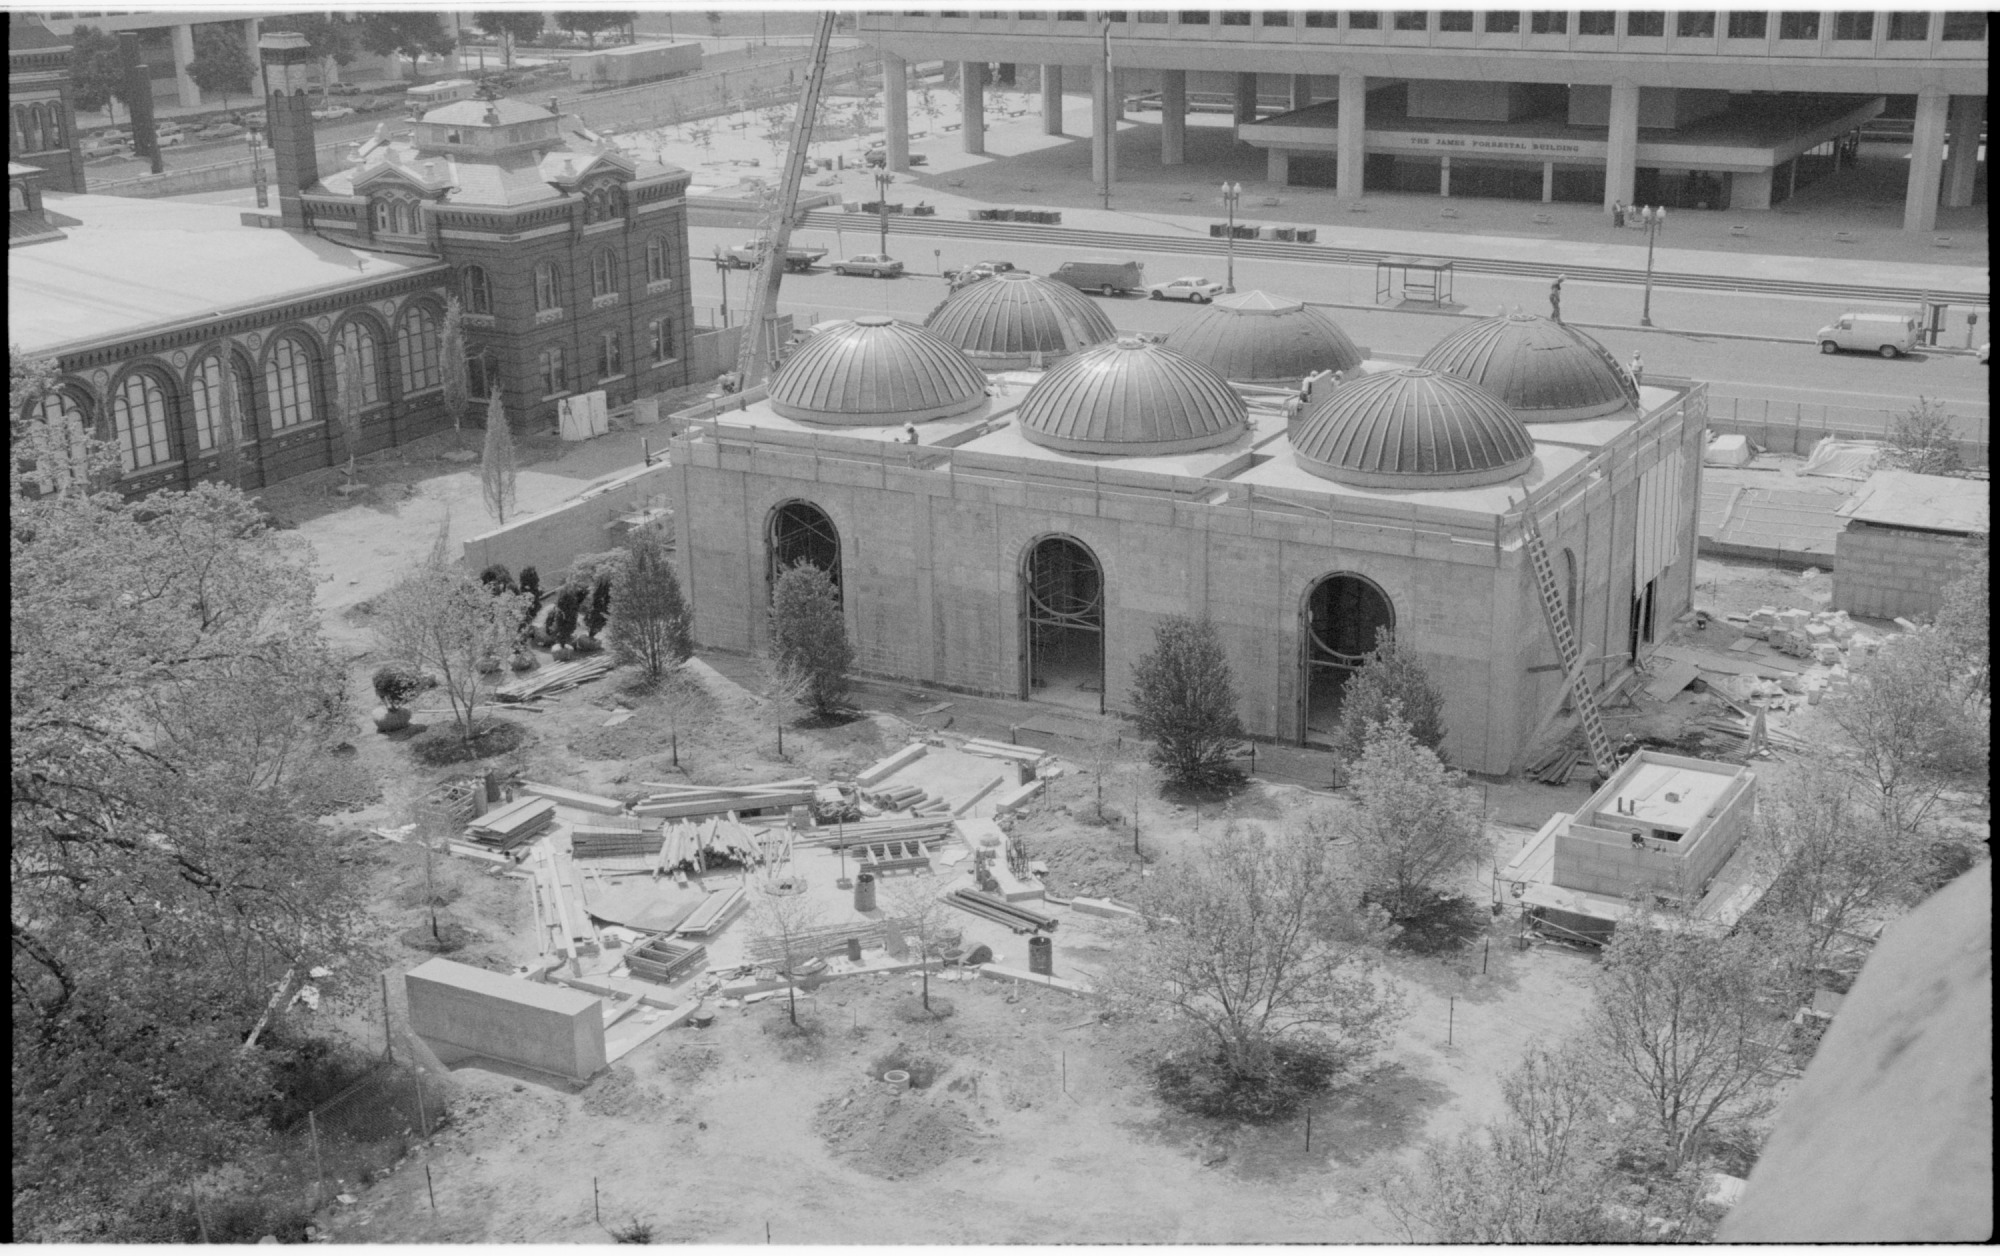 Renaming of African Art Museum, 1981, 1981, Smithsonian Archives - History Div.